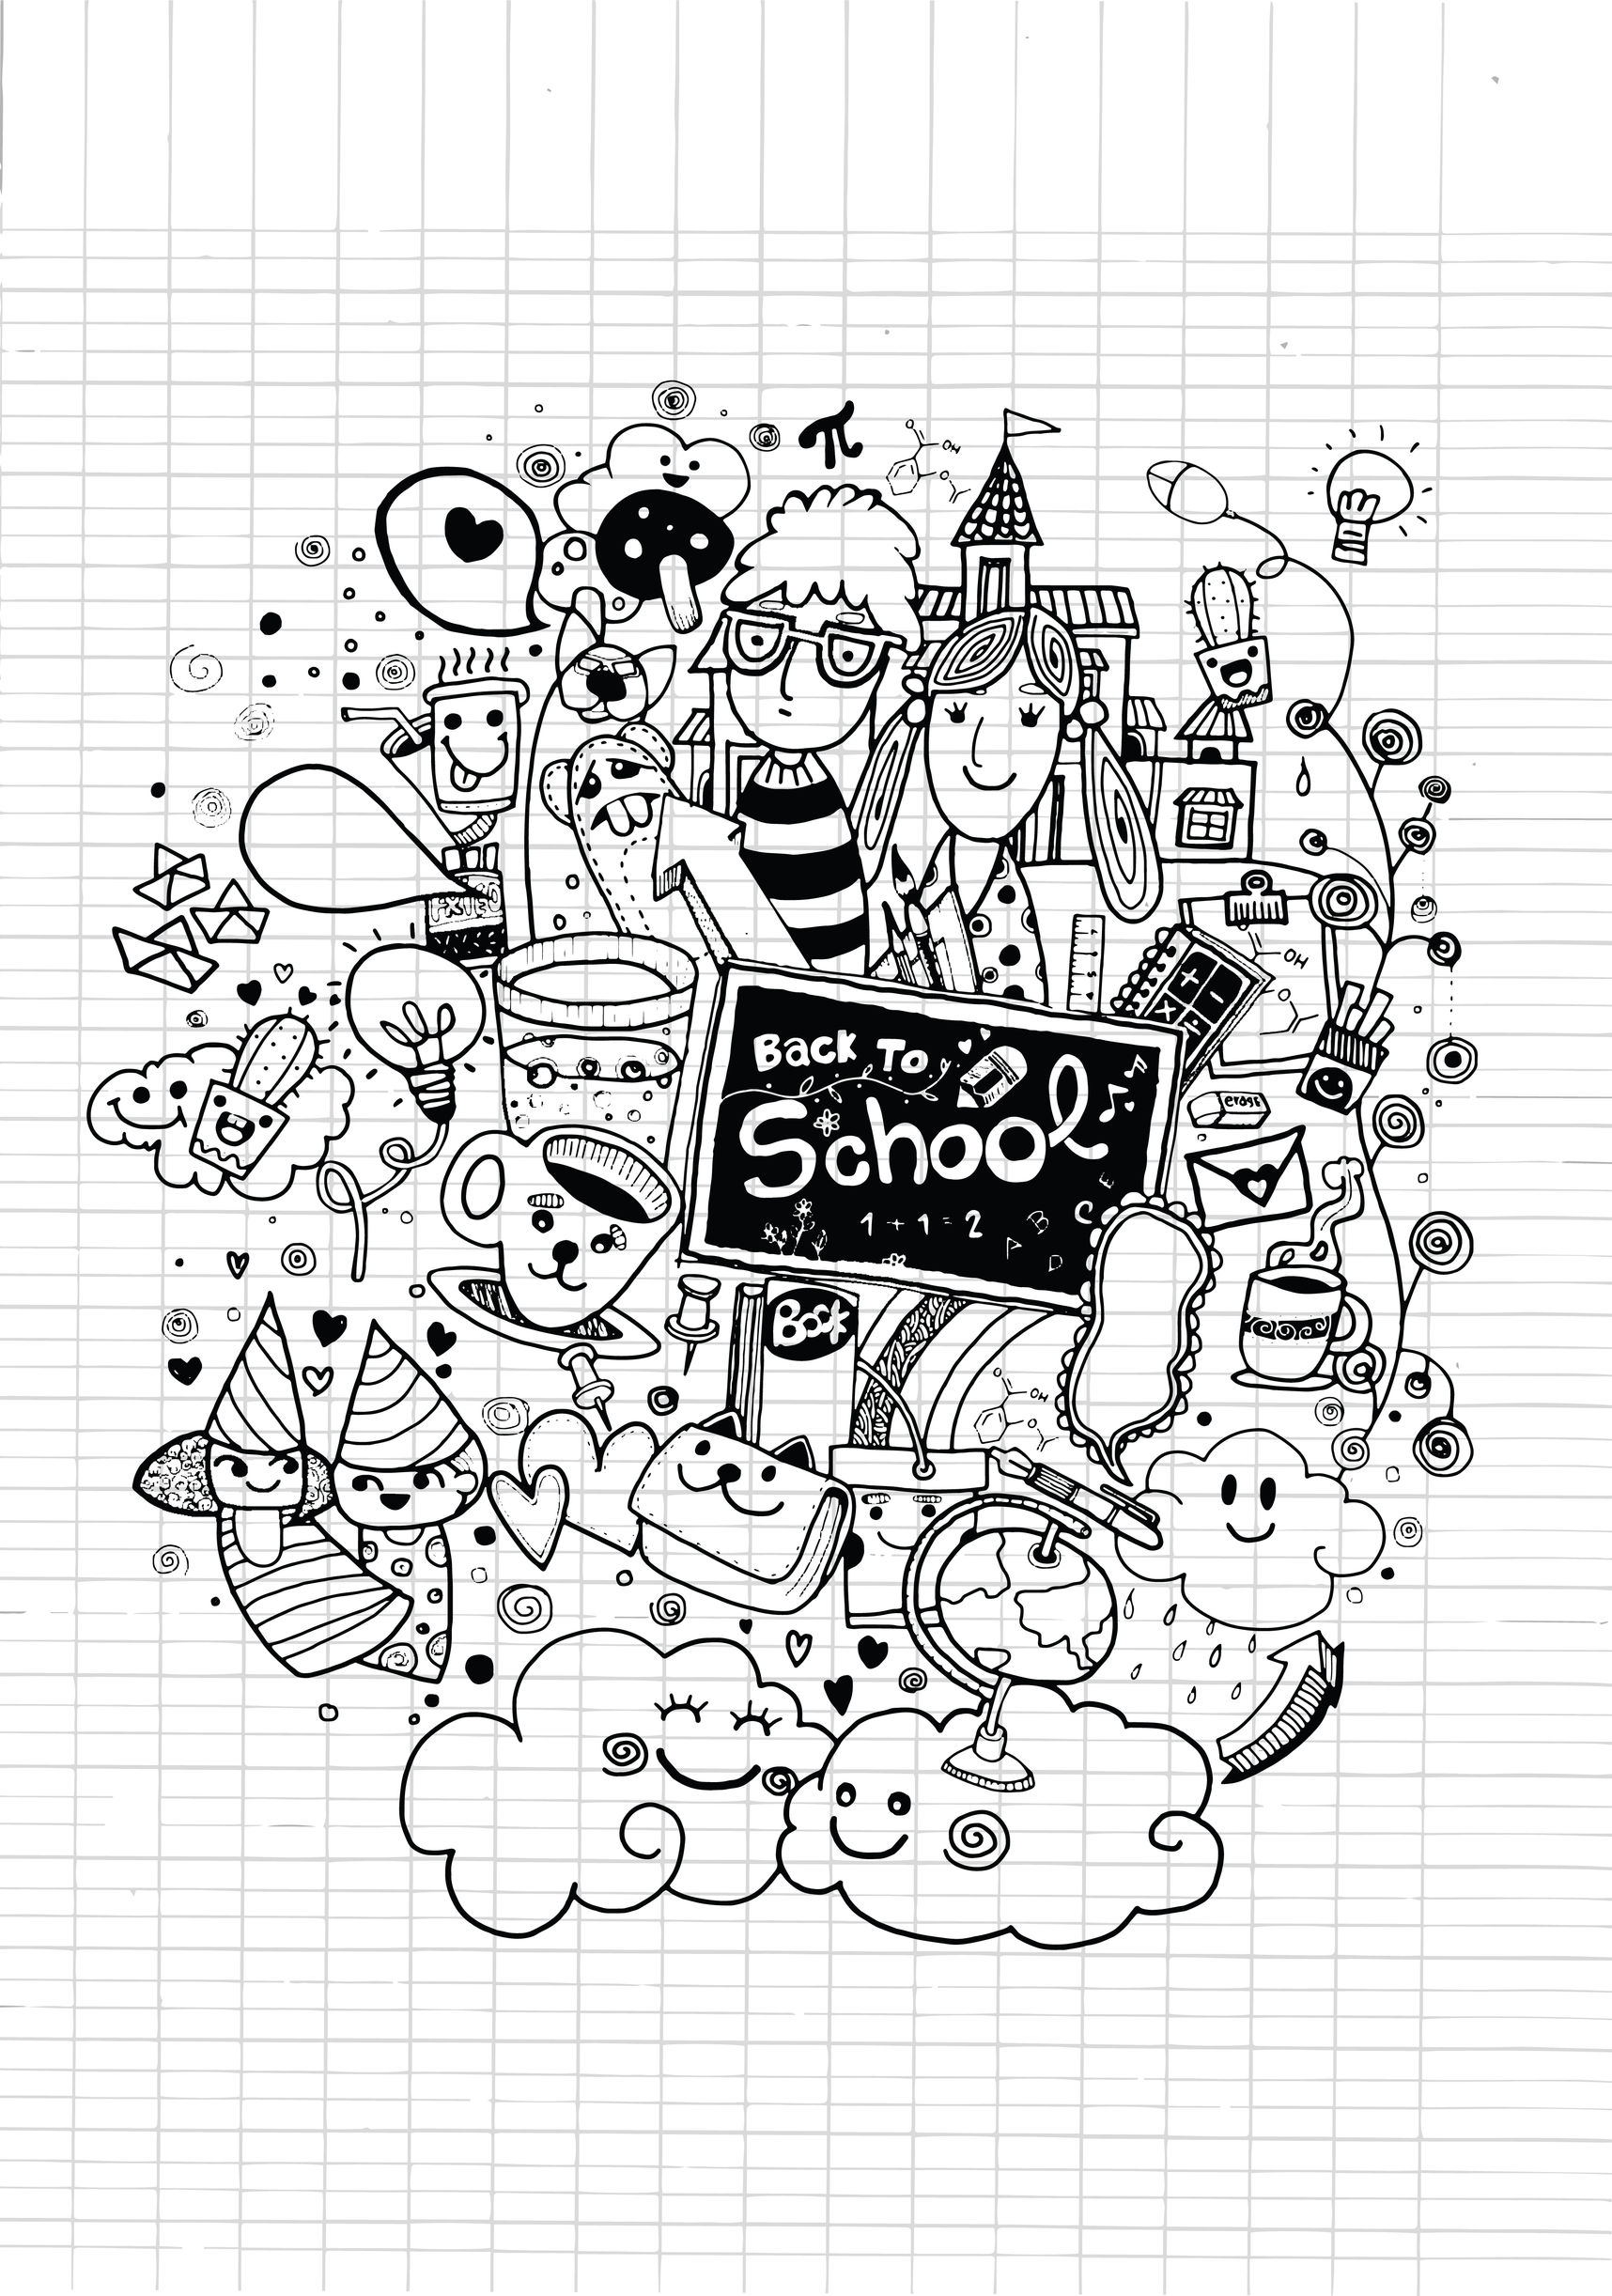 Coloring doodle back to school by 9george